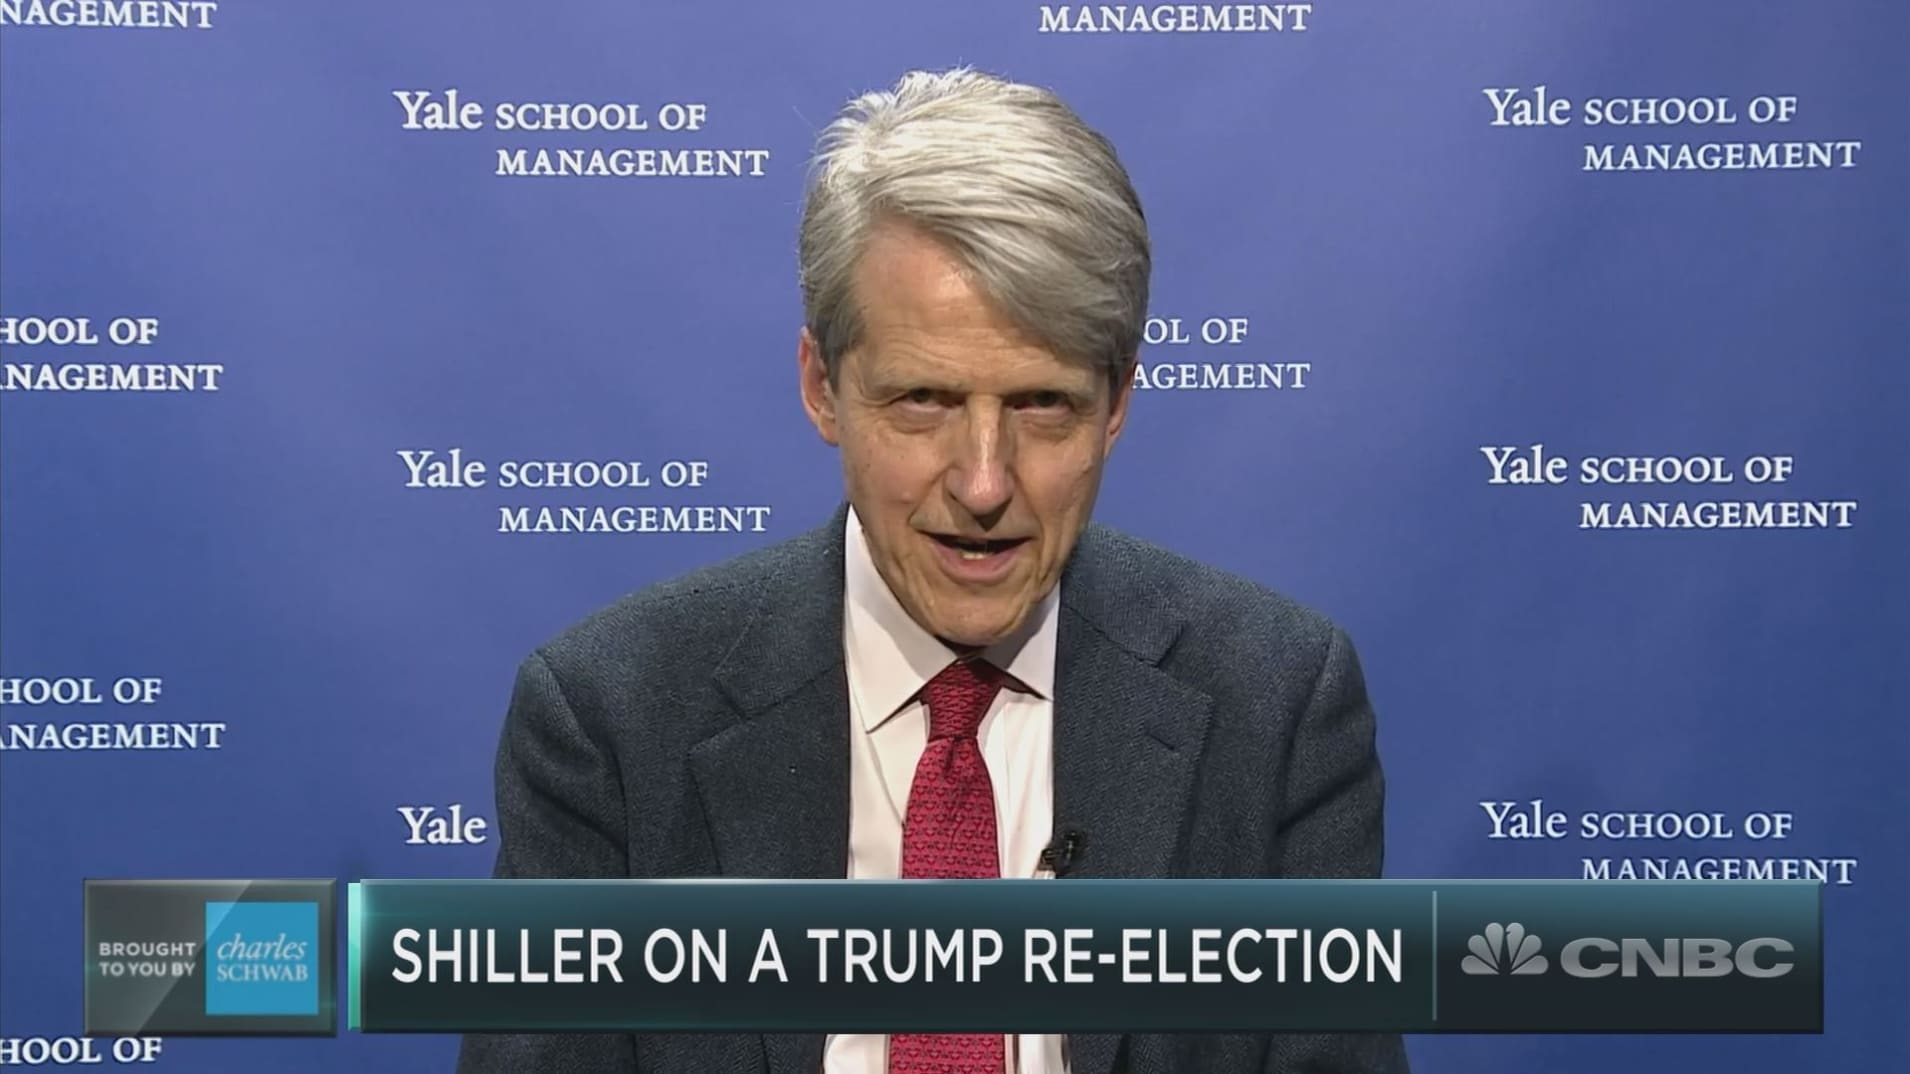 A President Trump re-election win would help boost stock prices and delay a recession: Nobel Prize winner Robert Shiller